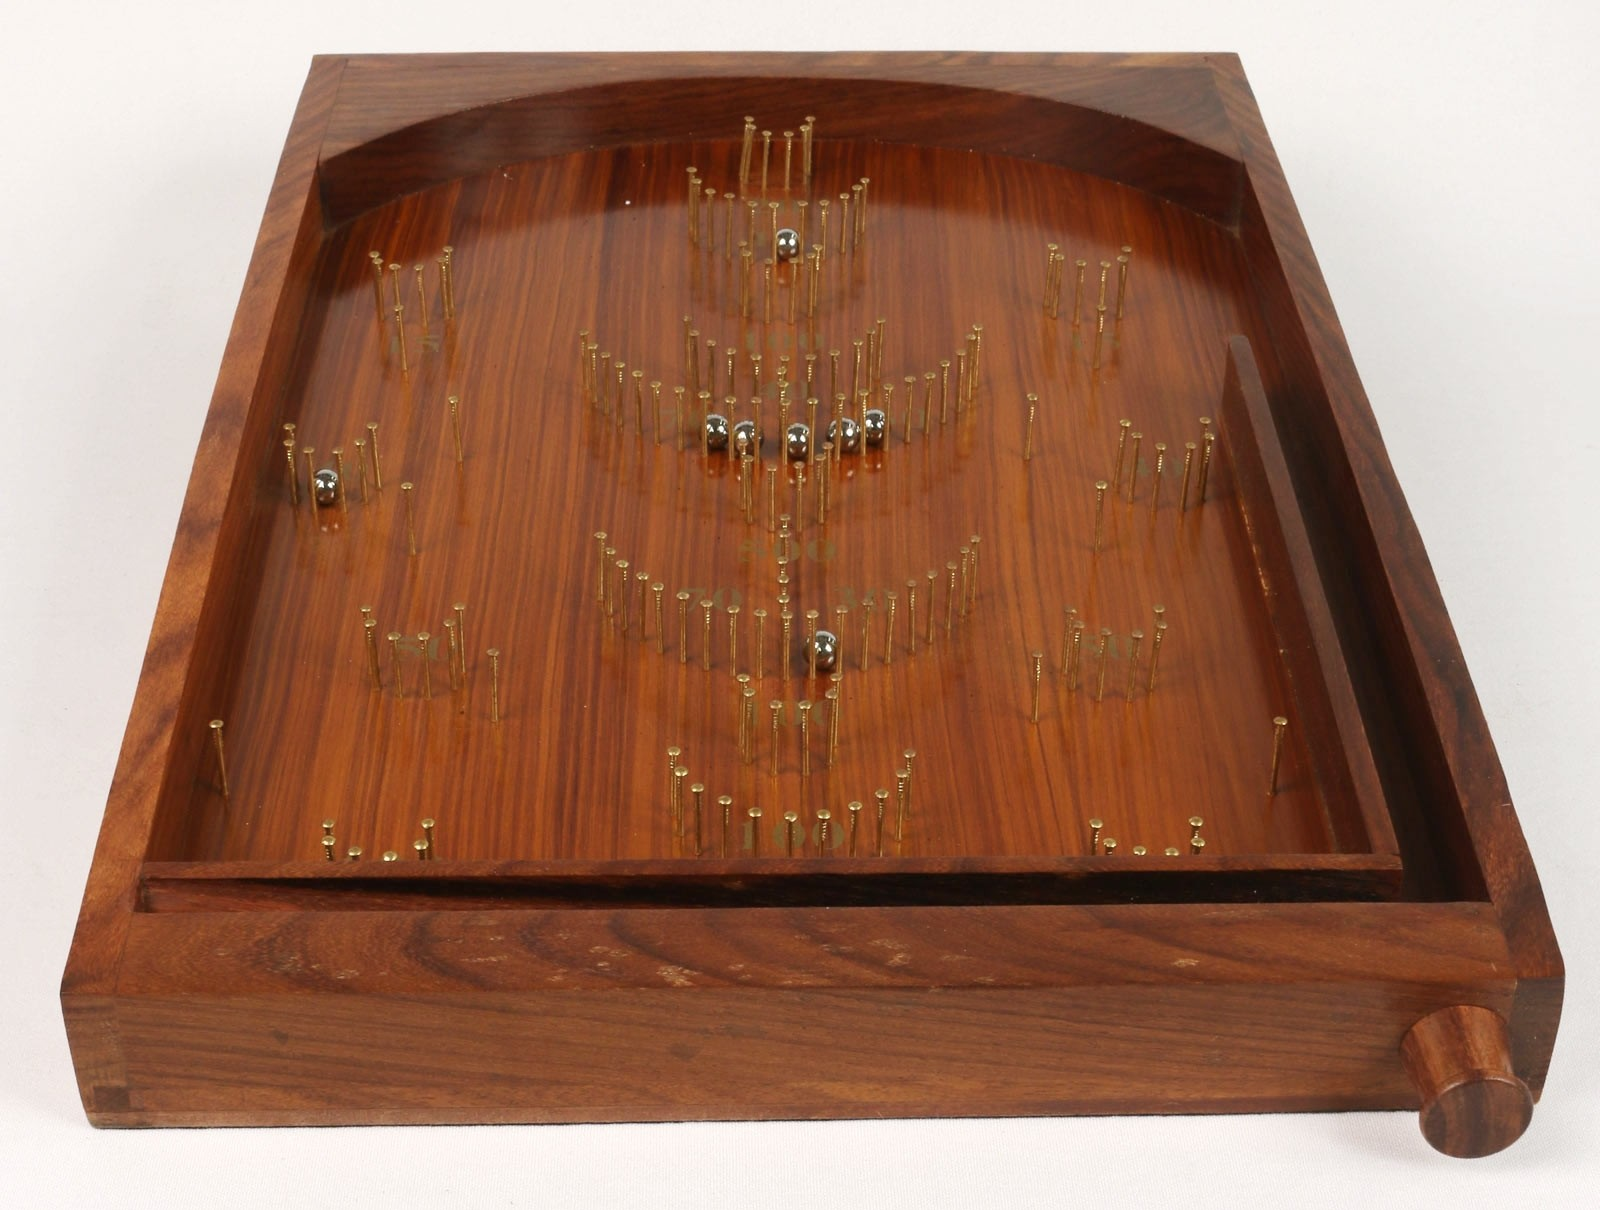 Large Bagatelle Board Traditional Games